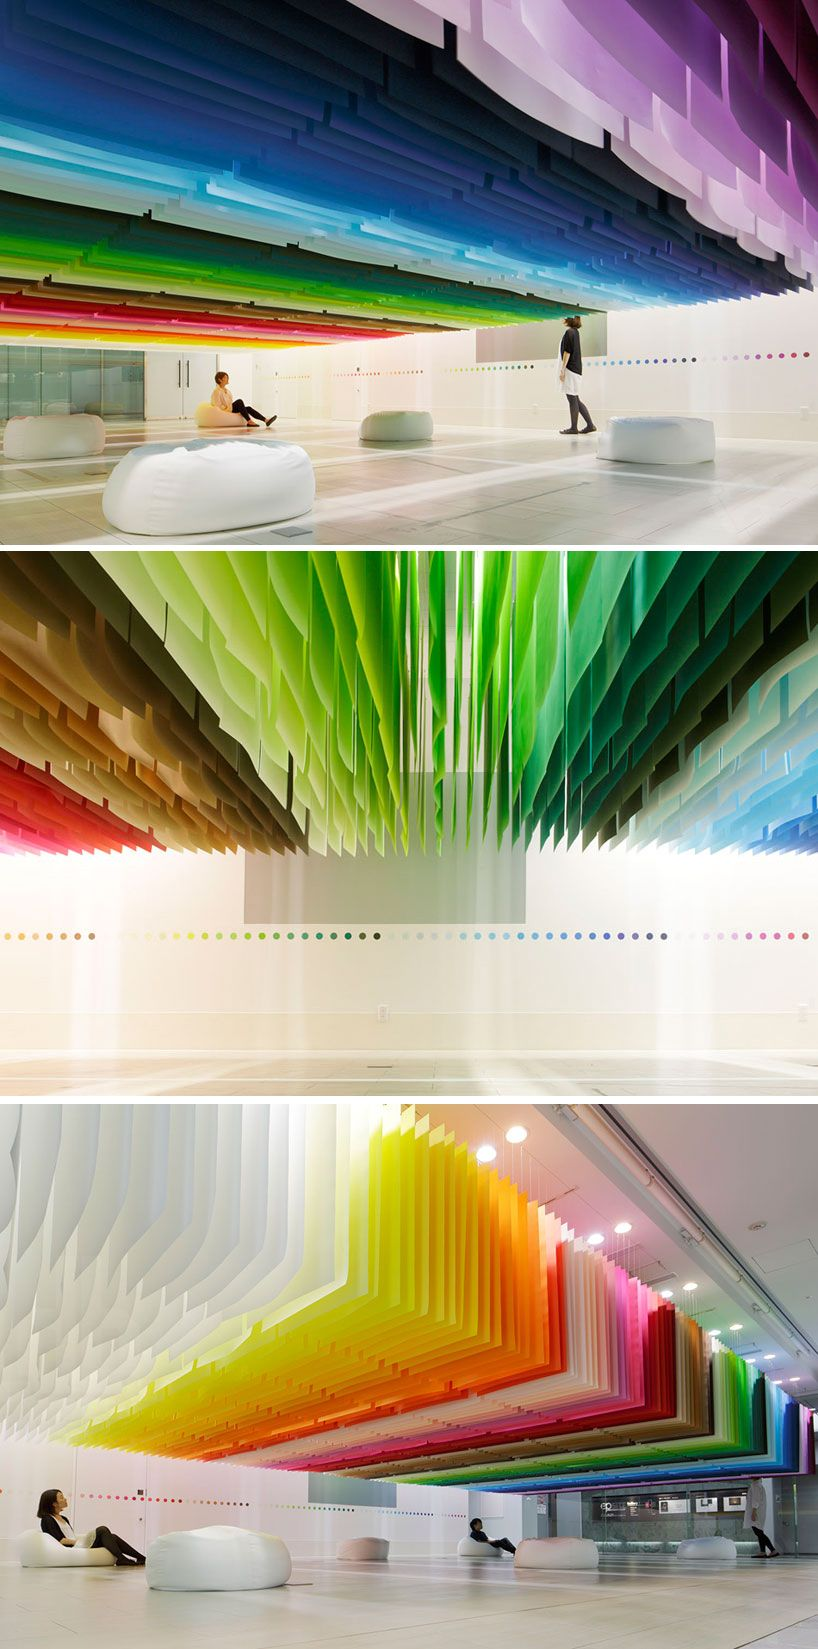 100 colors installation using sheets from Takeo Paper for Shinjuku Creators Festa 2013 by Emmanuelle Moureaux